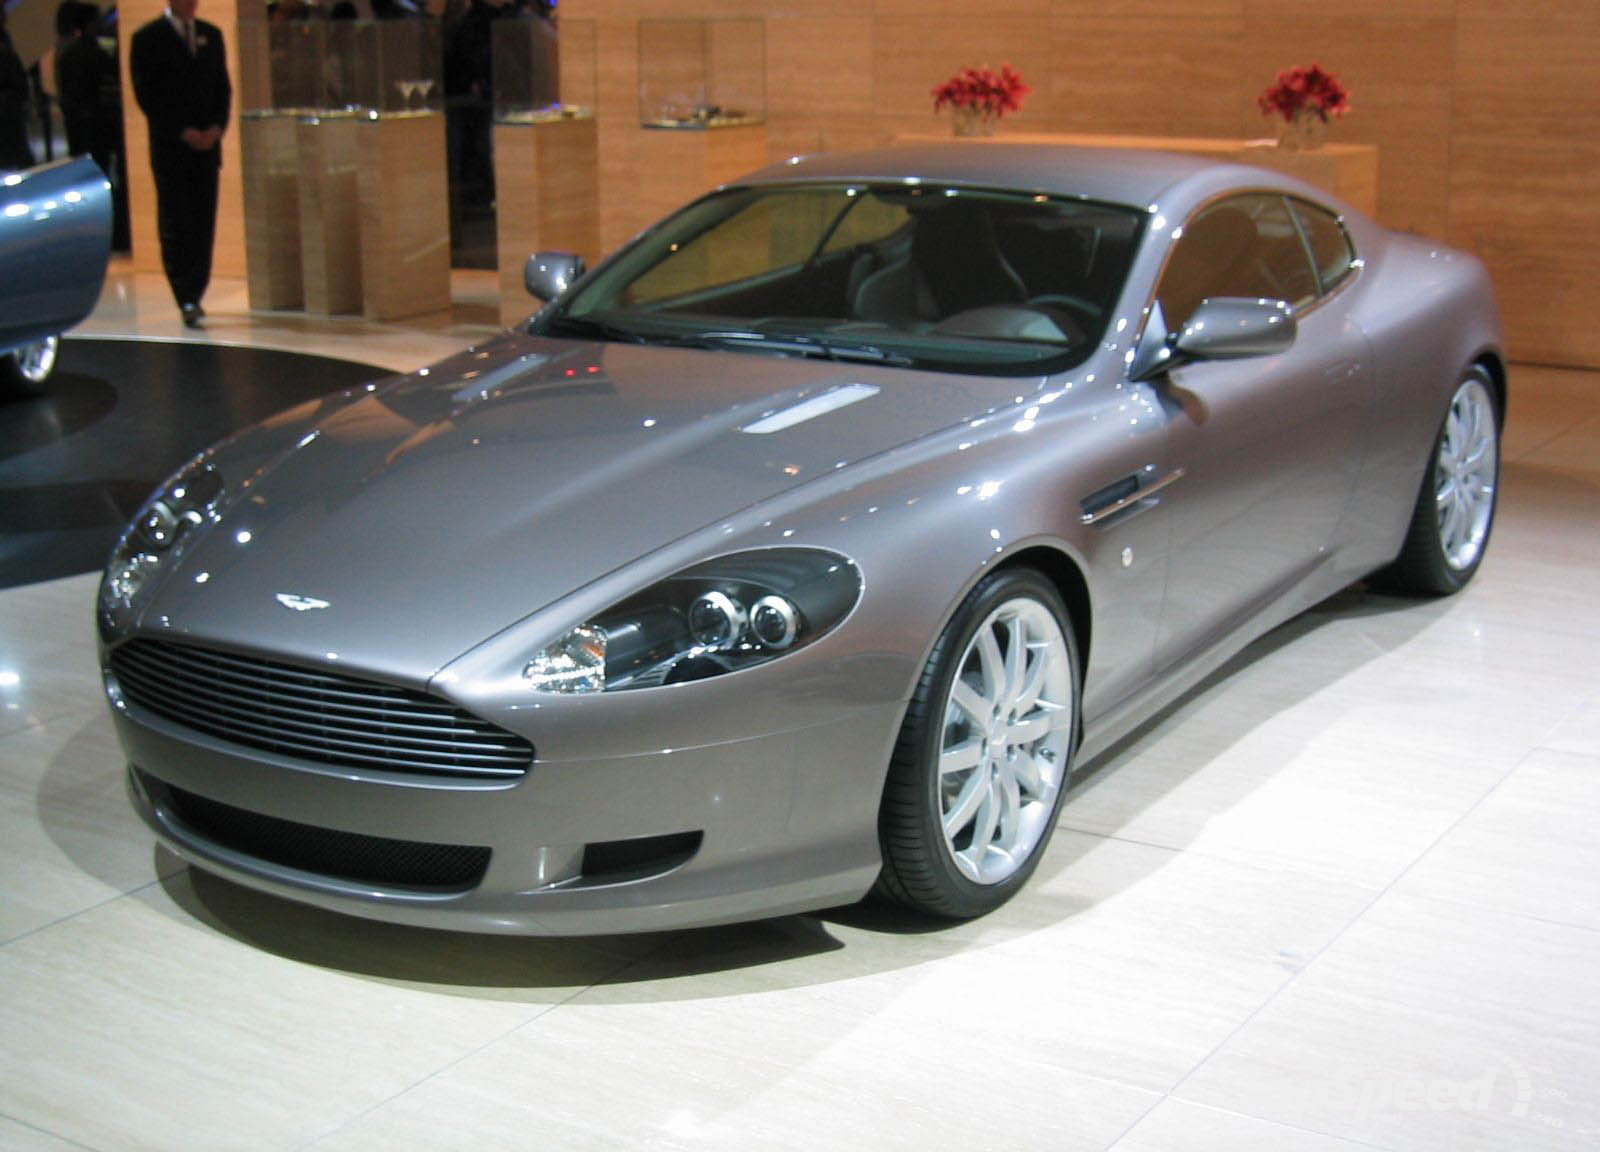 aston martin db9 coupe 2005 wallpaper #7